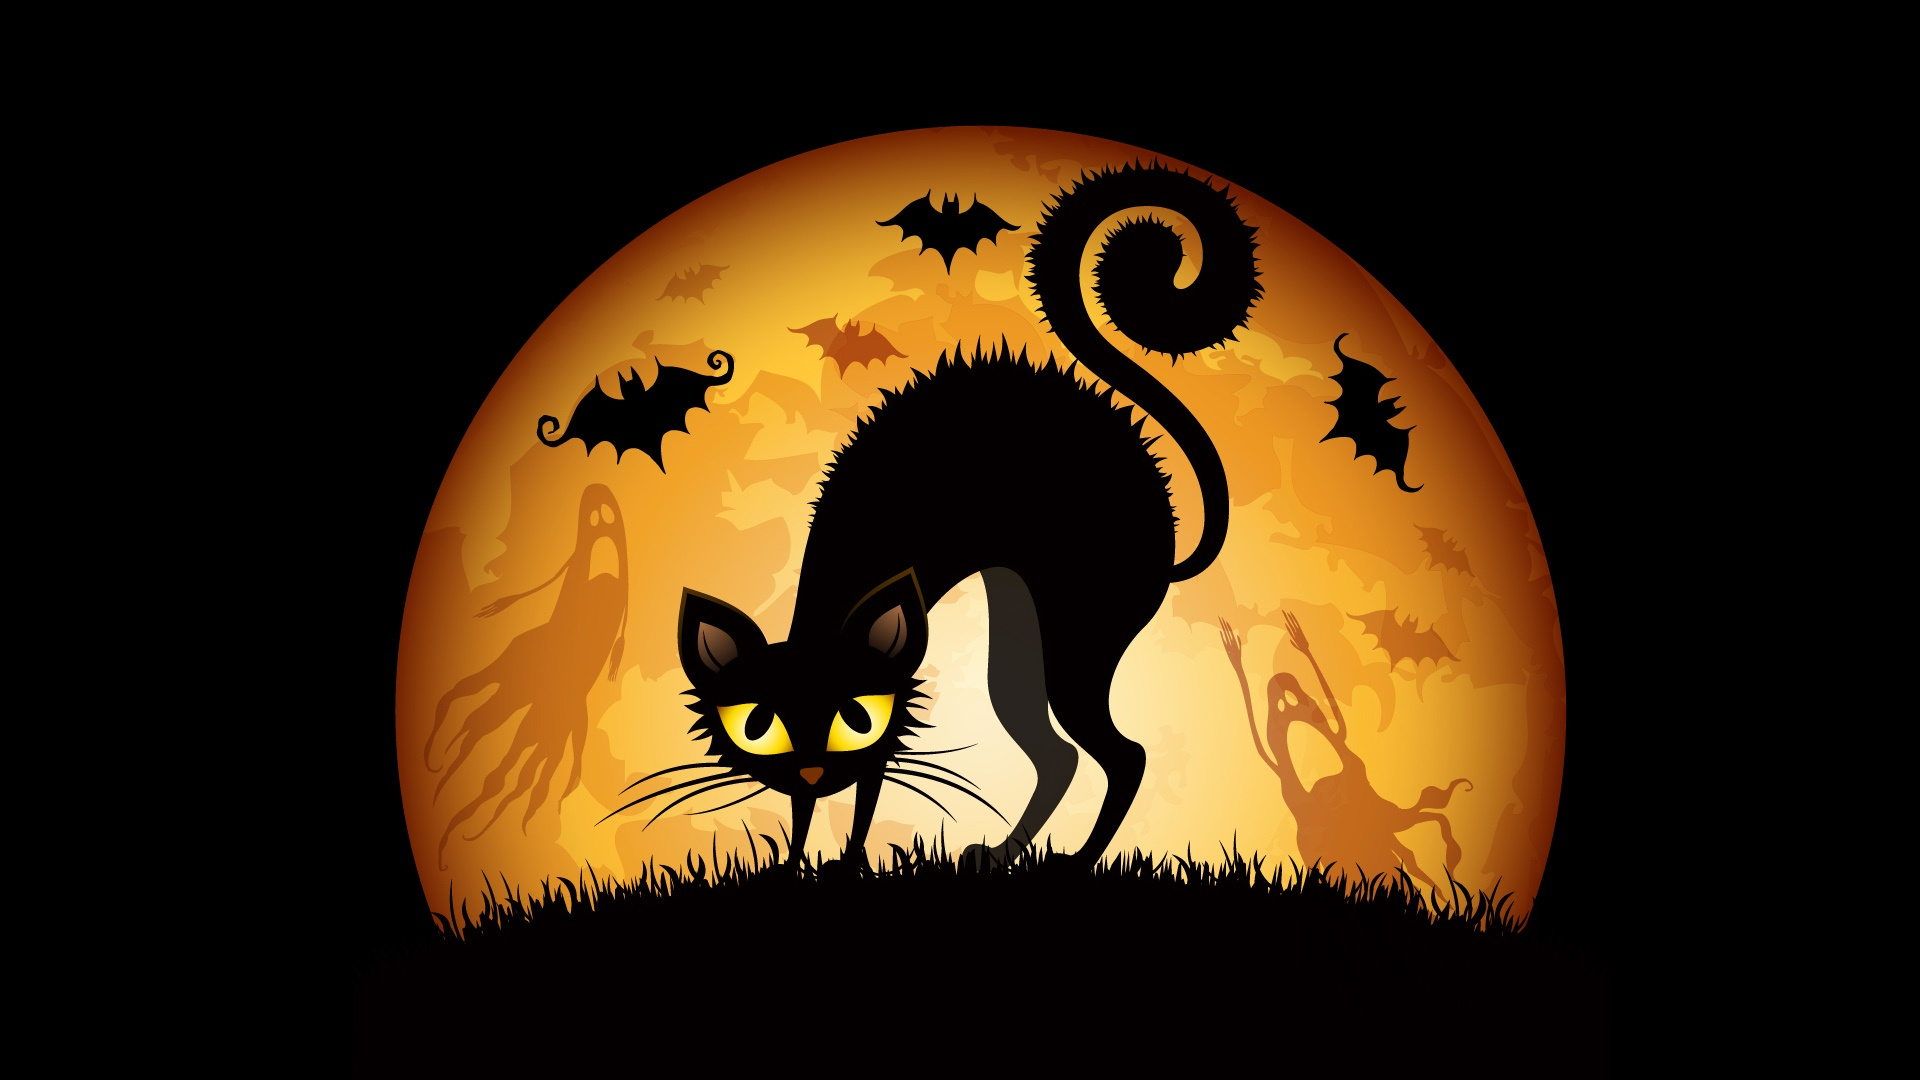 HD Halloween Backgrounds | PixelsTalk Net